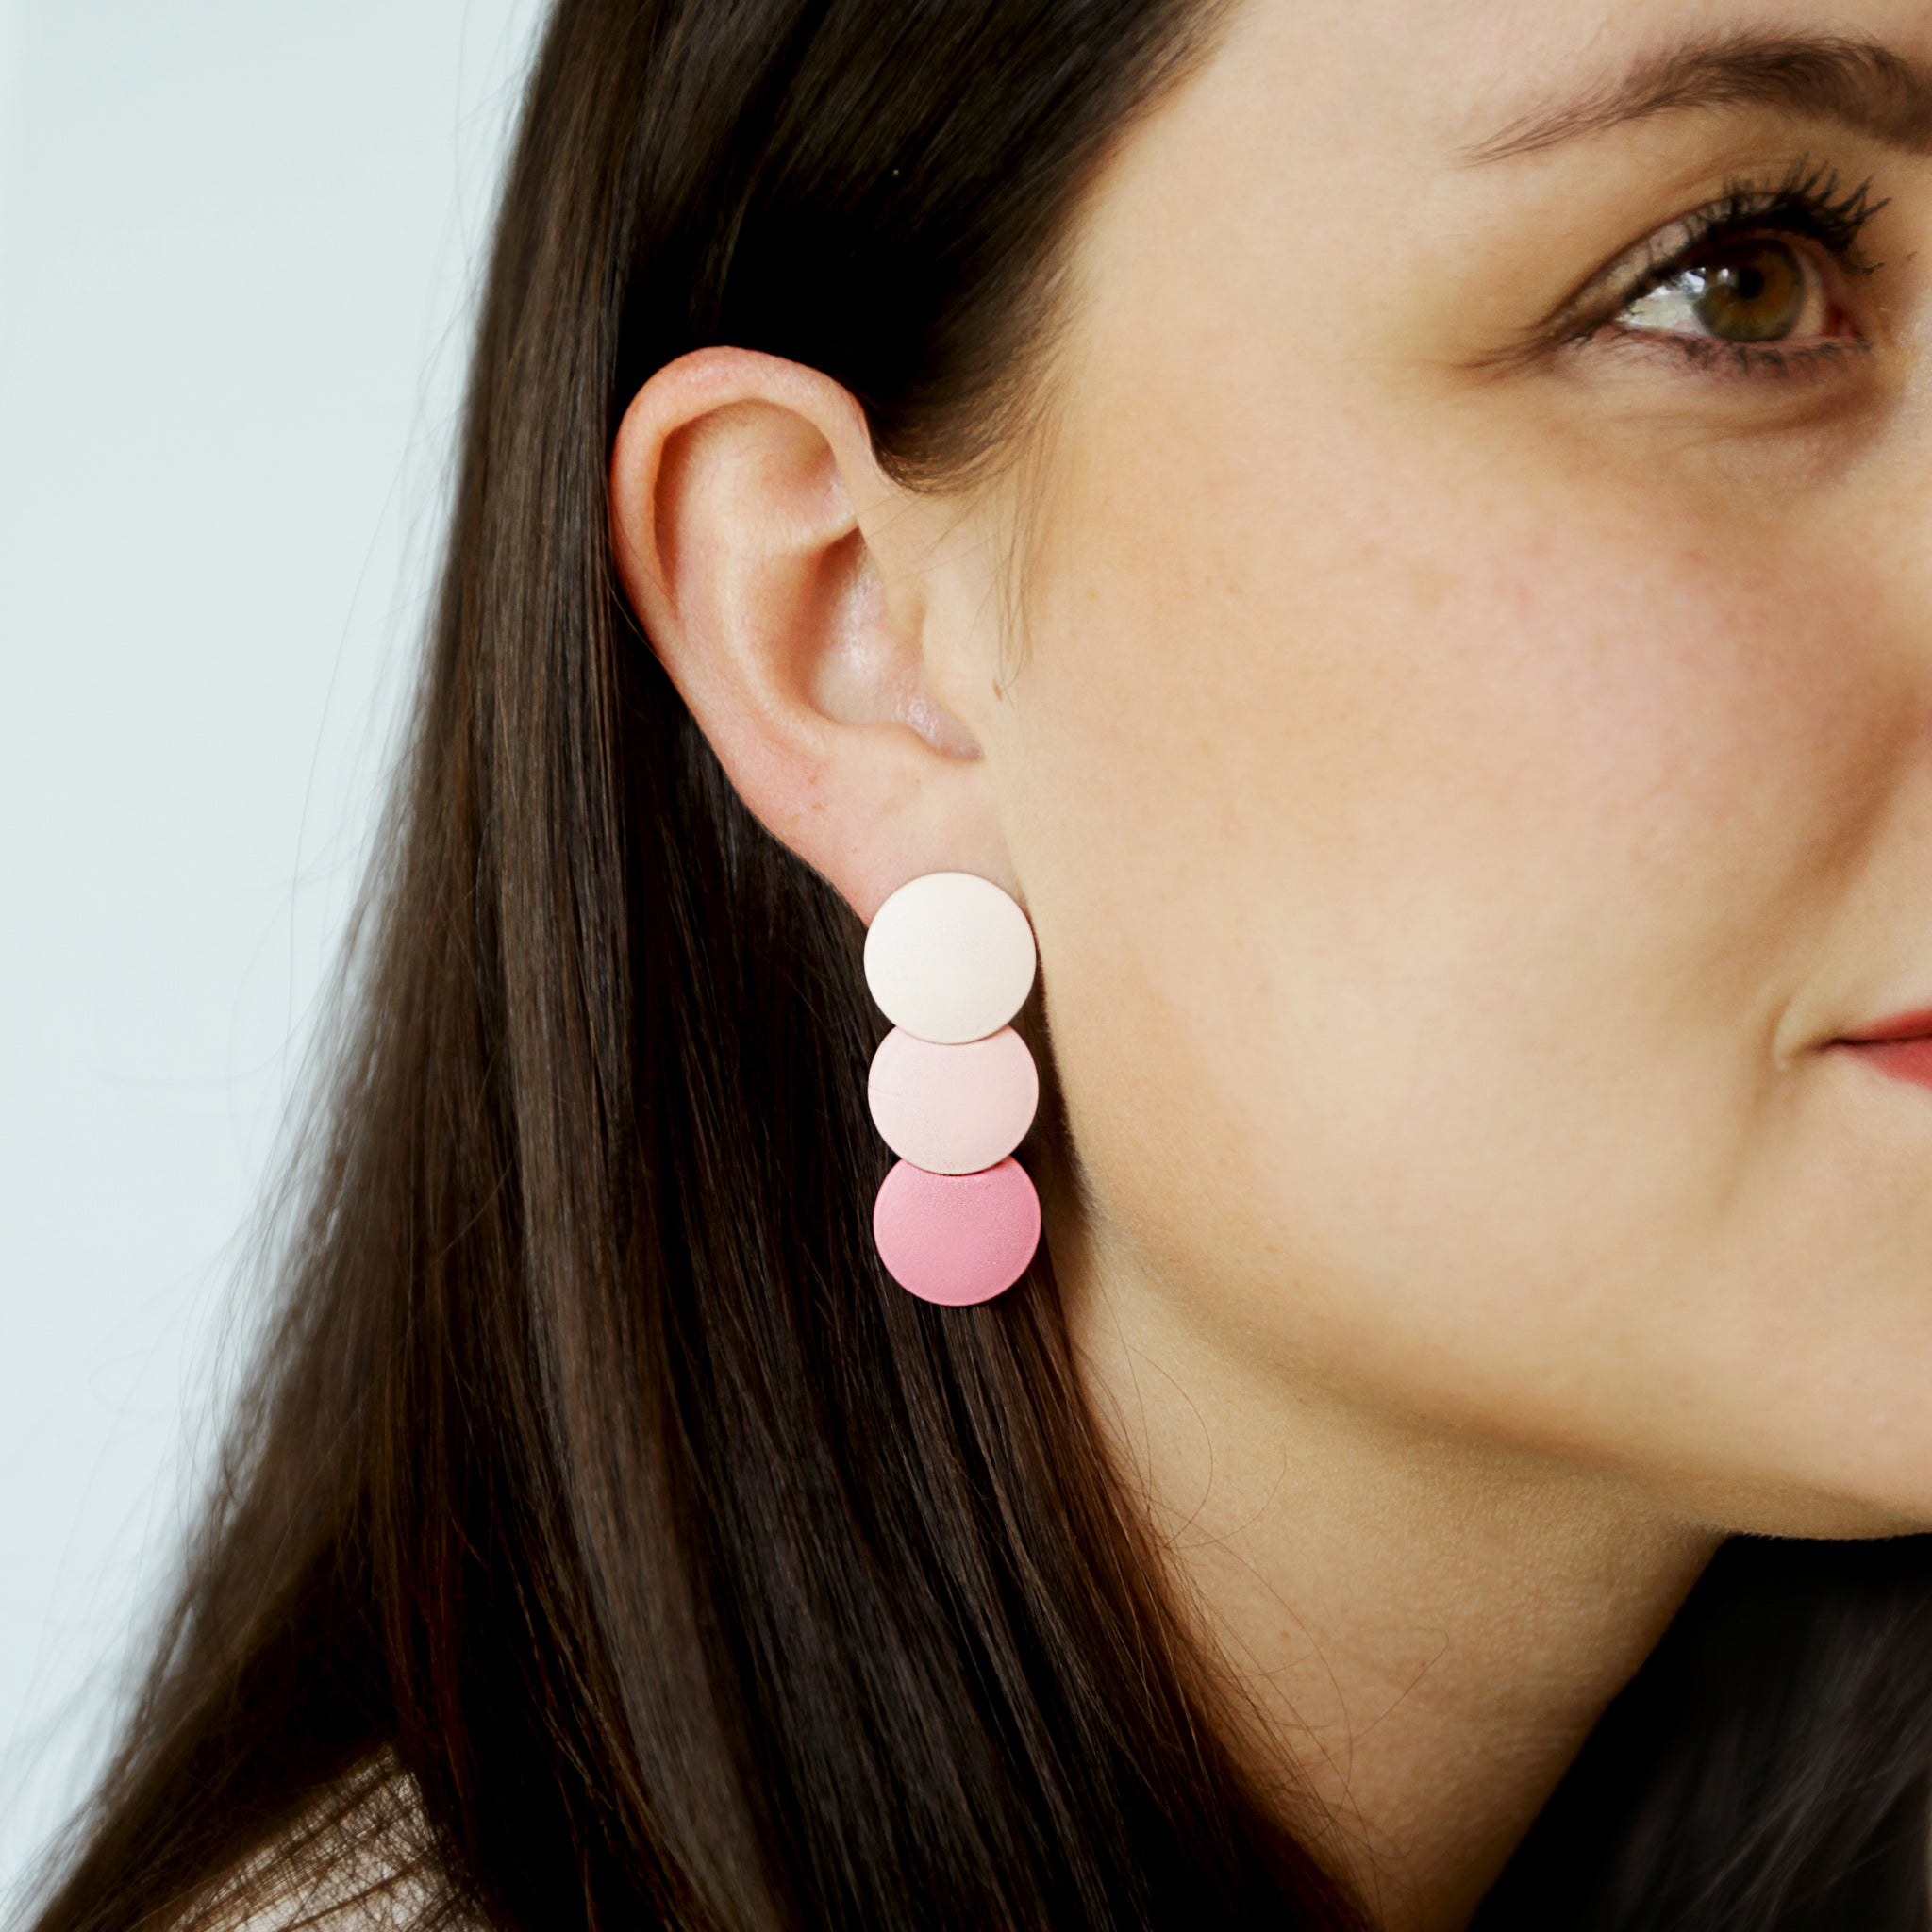 Strawberries And Cream [Strobe Bury Sink Ream] - Pink Ombre Circle Drop Earrings - Model Looking In The Distance | Sundree Accessories